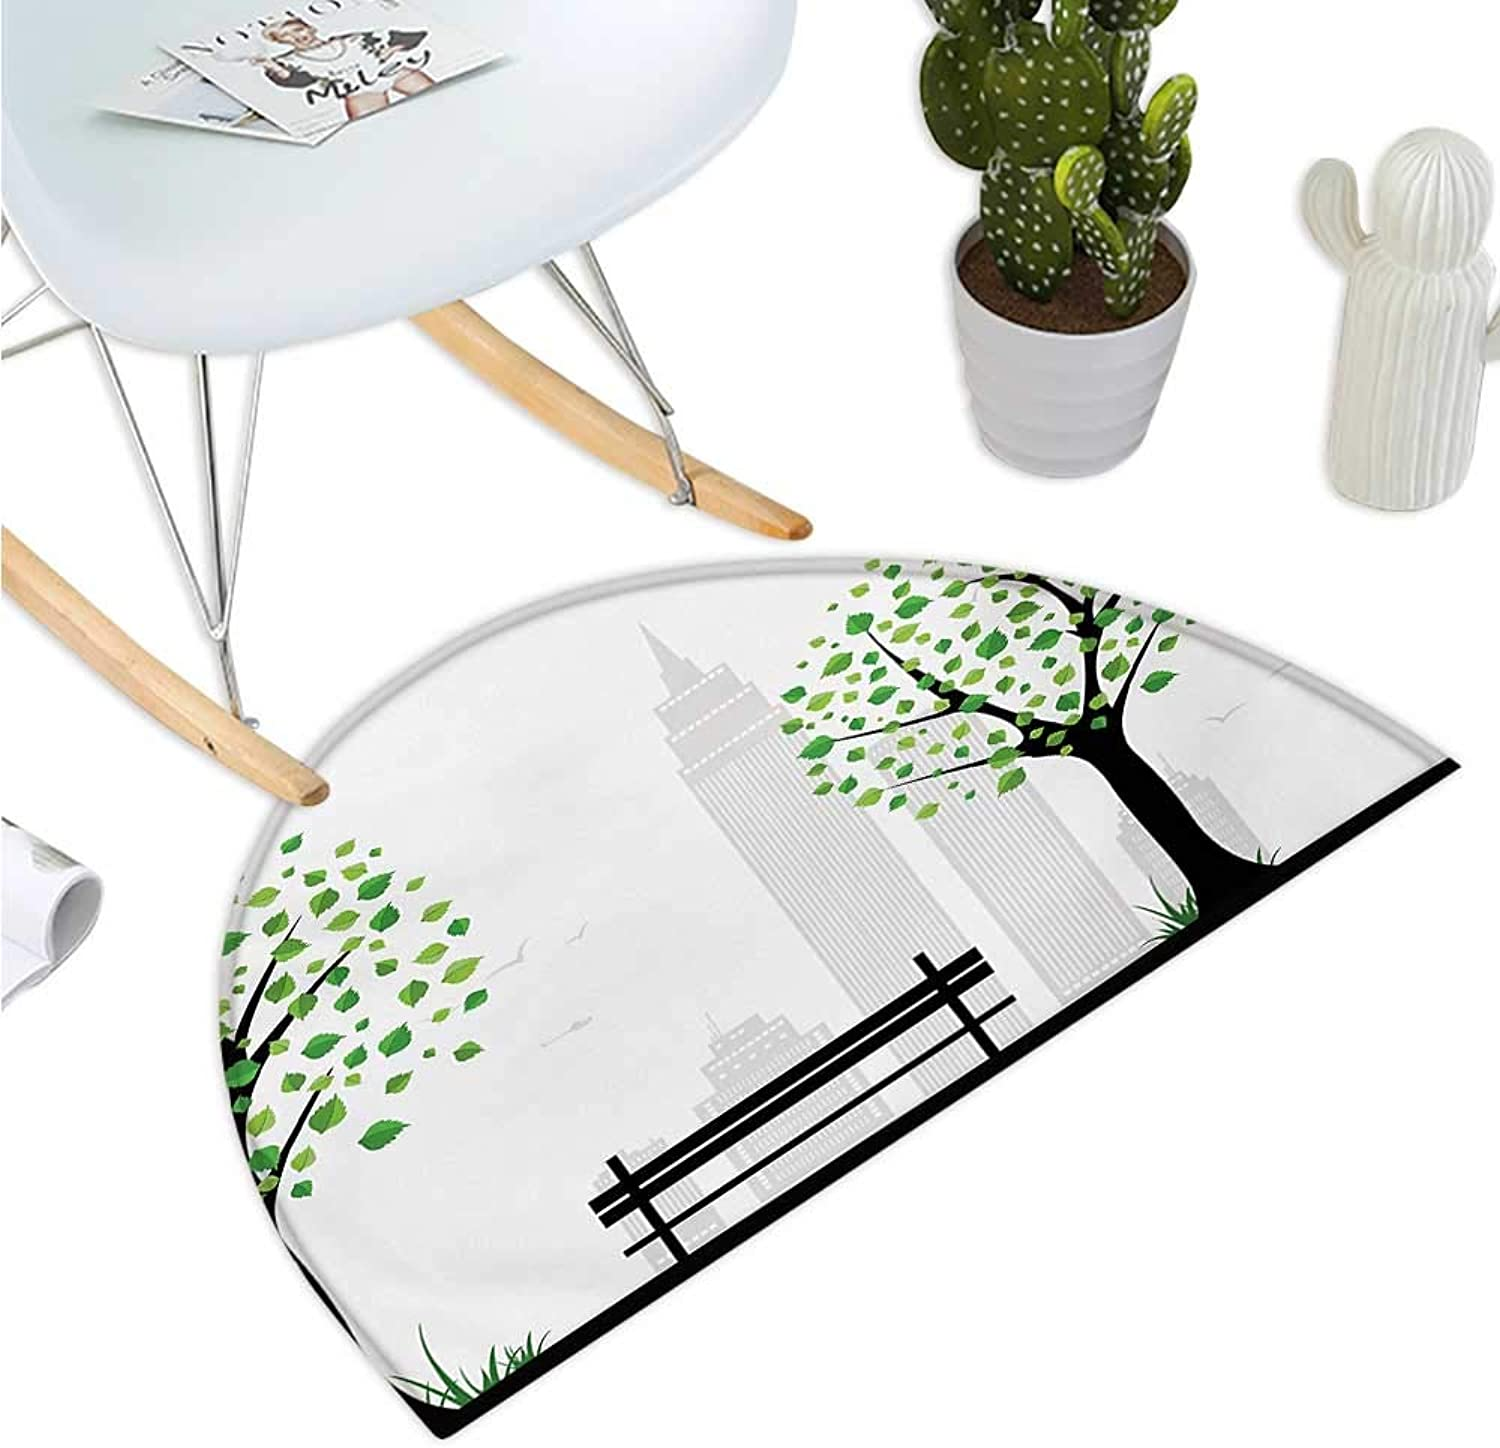 Leaf Semicircle Doormat Minimalist City Figures with Simple Lines and Leaf Patterns in Boho Design Print Halfmoon doormats H 47.2  xD 70.8  Green Black